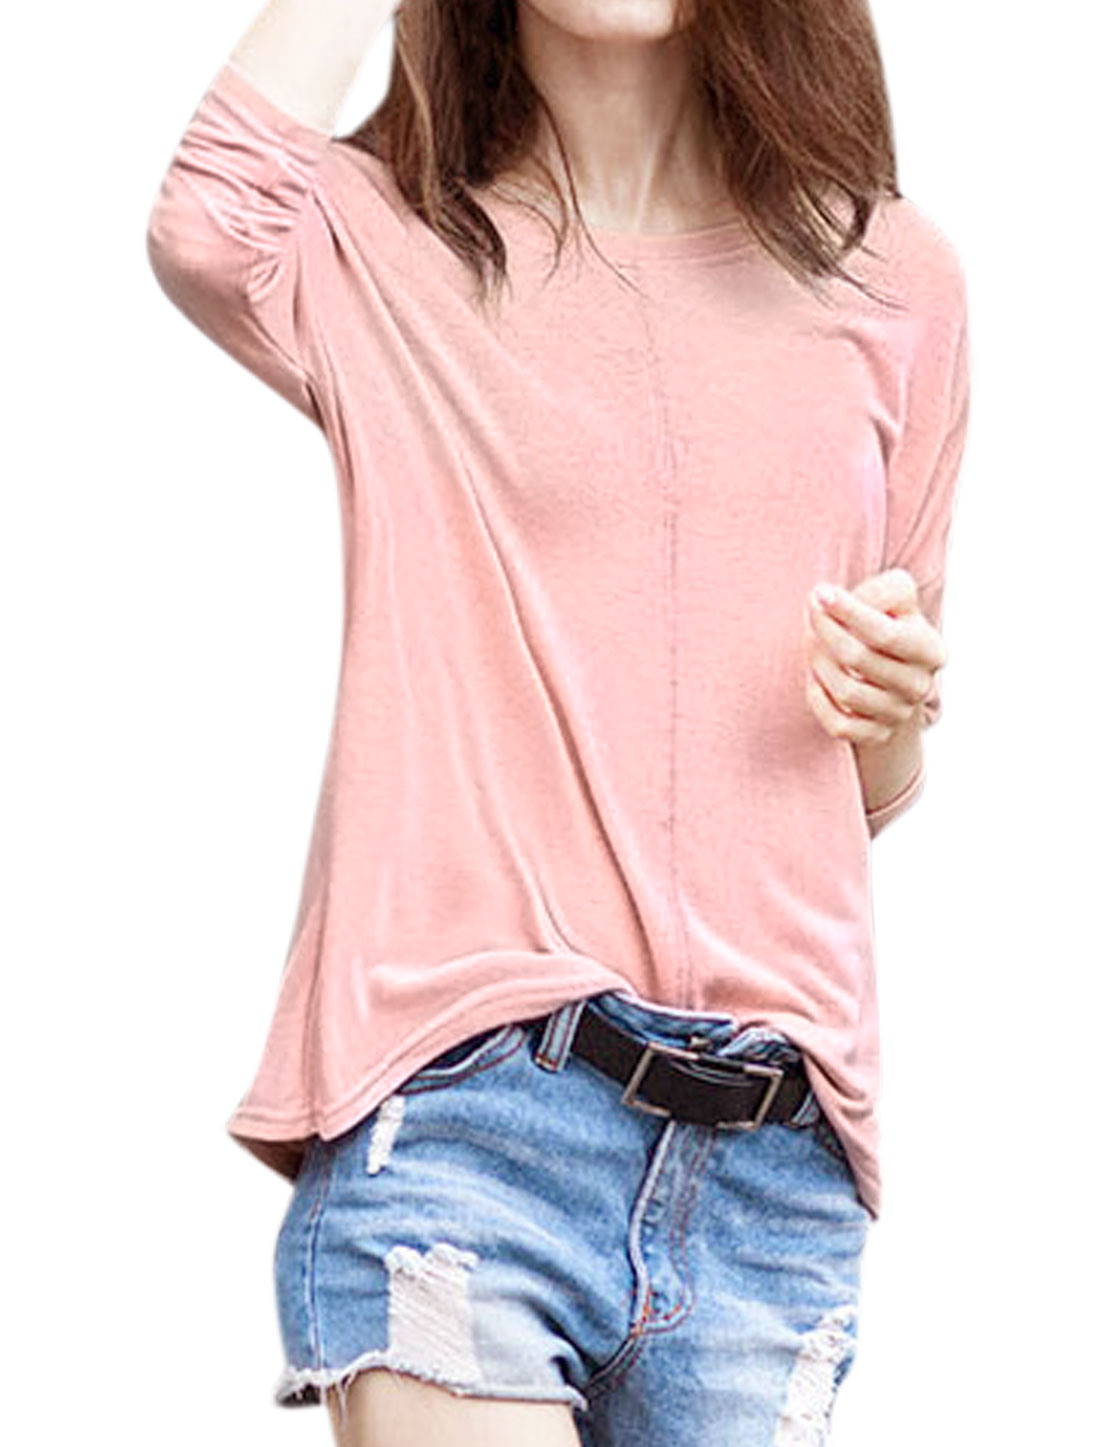 Women Decorative Seam Loose Batwing T-Shirt Pink XS